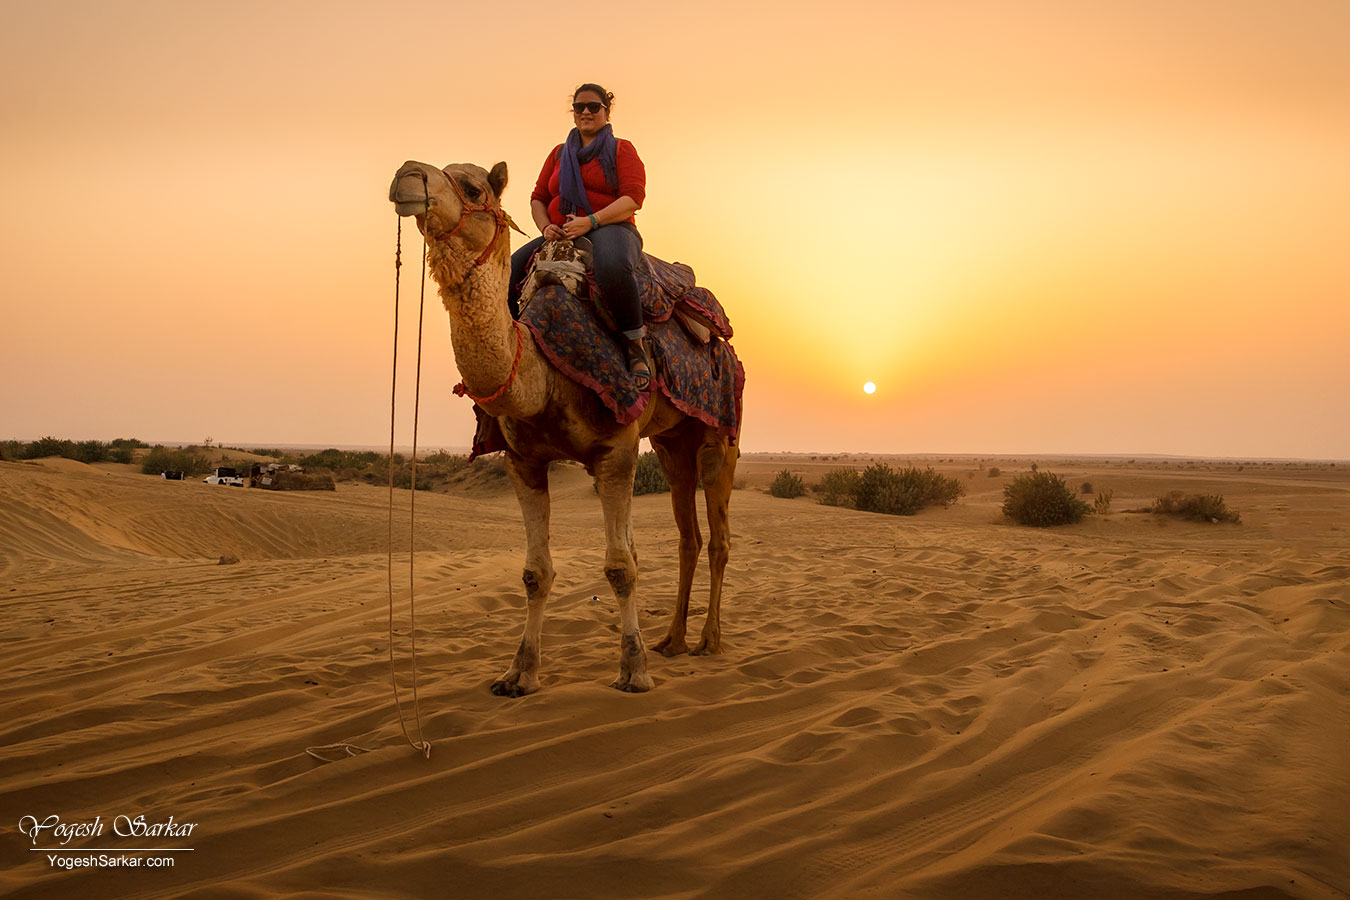 71-mansi-and-camel-at-sam-sand-dunes.jpg